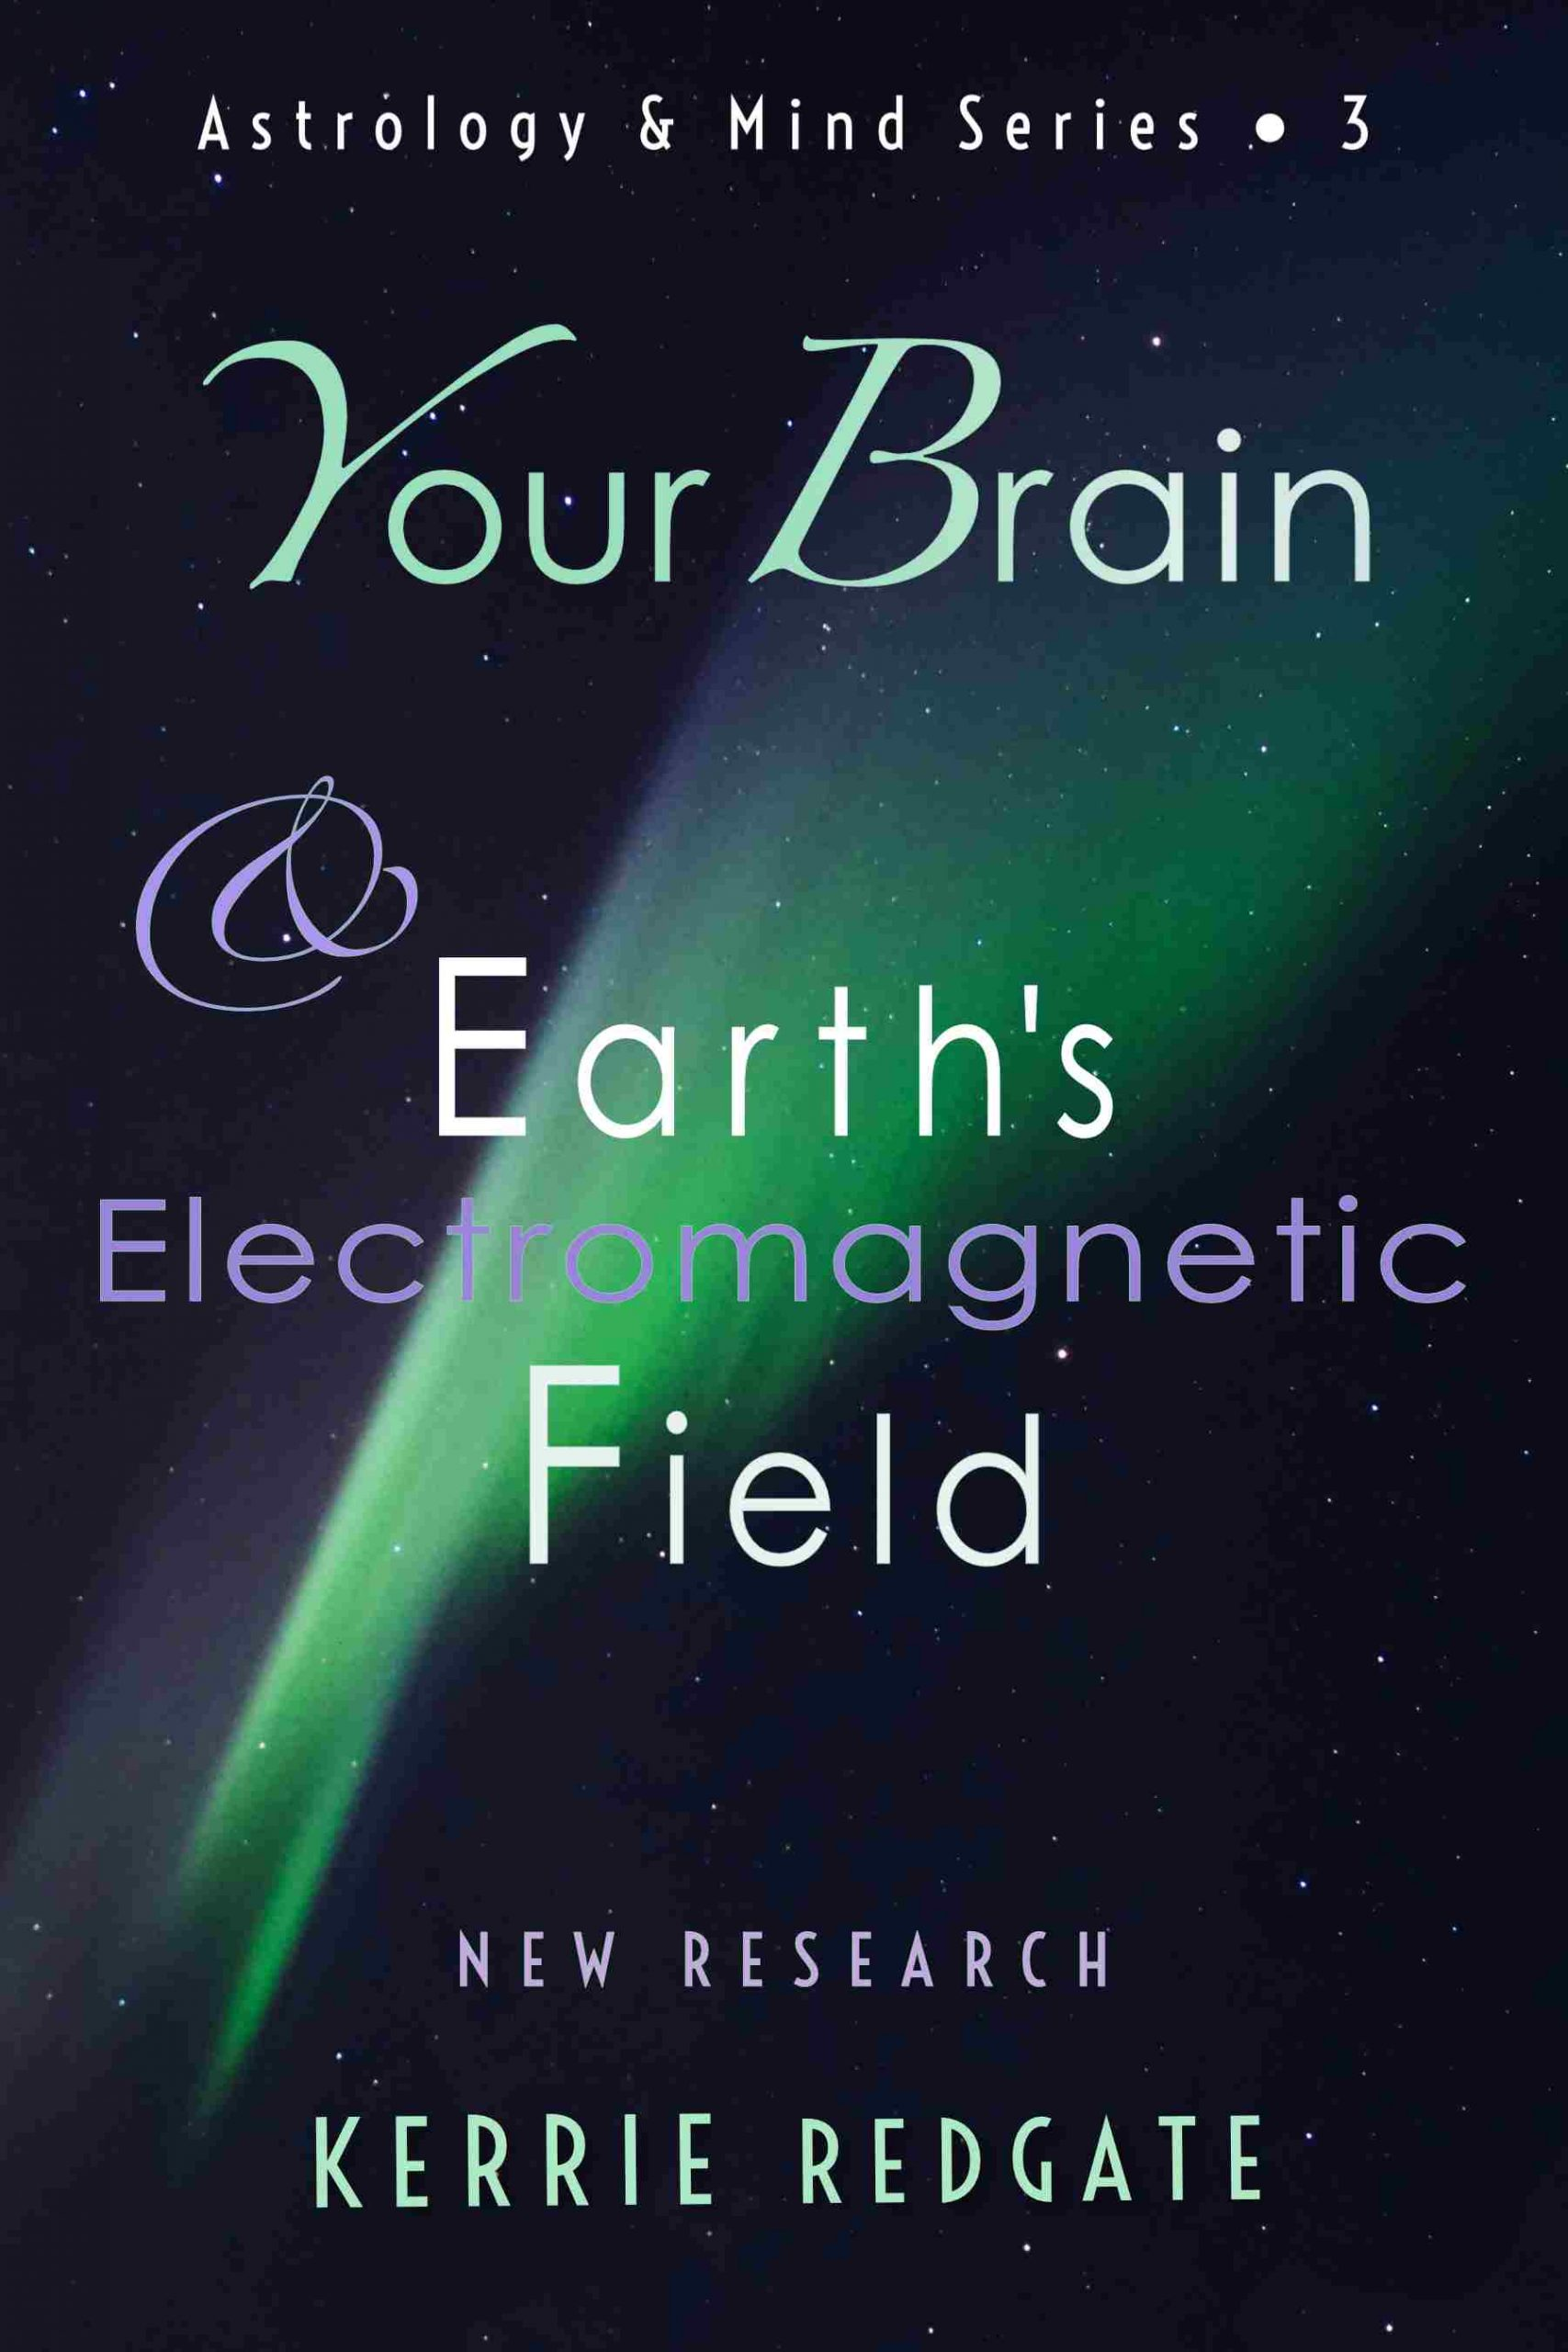 Book Cover: Your Brain & Earth's Electromagnetic Field by Kerrie Redgate